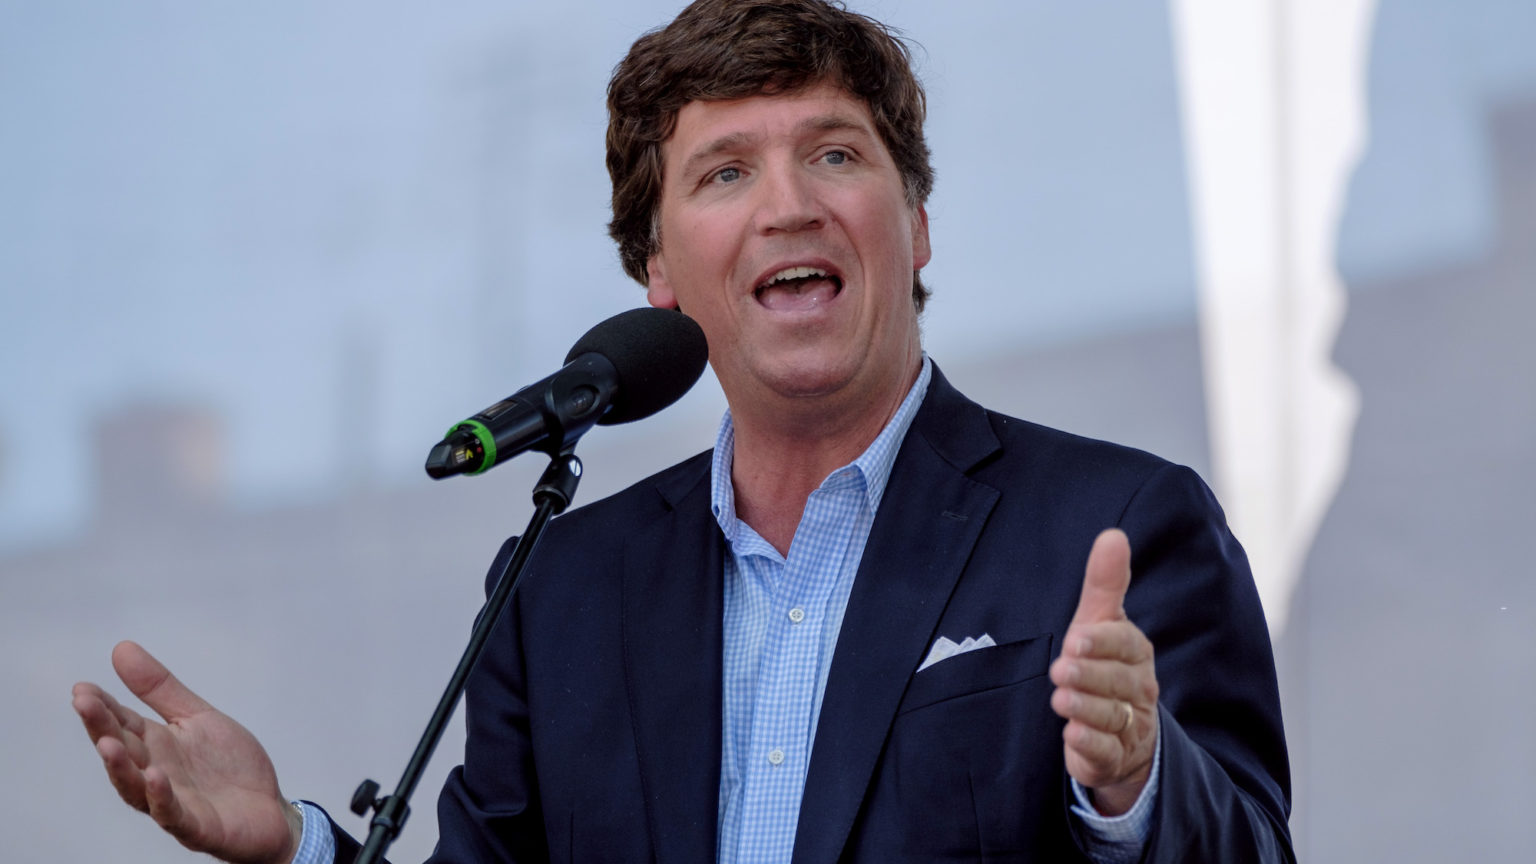 Why Tucker's trip to Hungary has sparked outrage